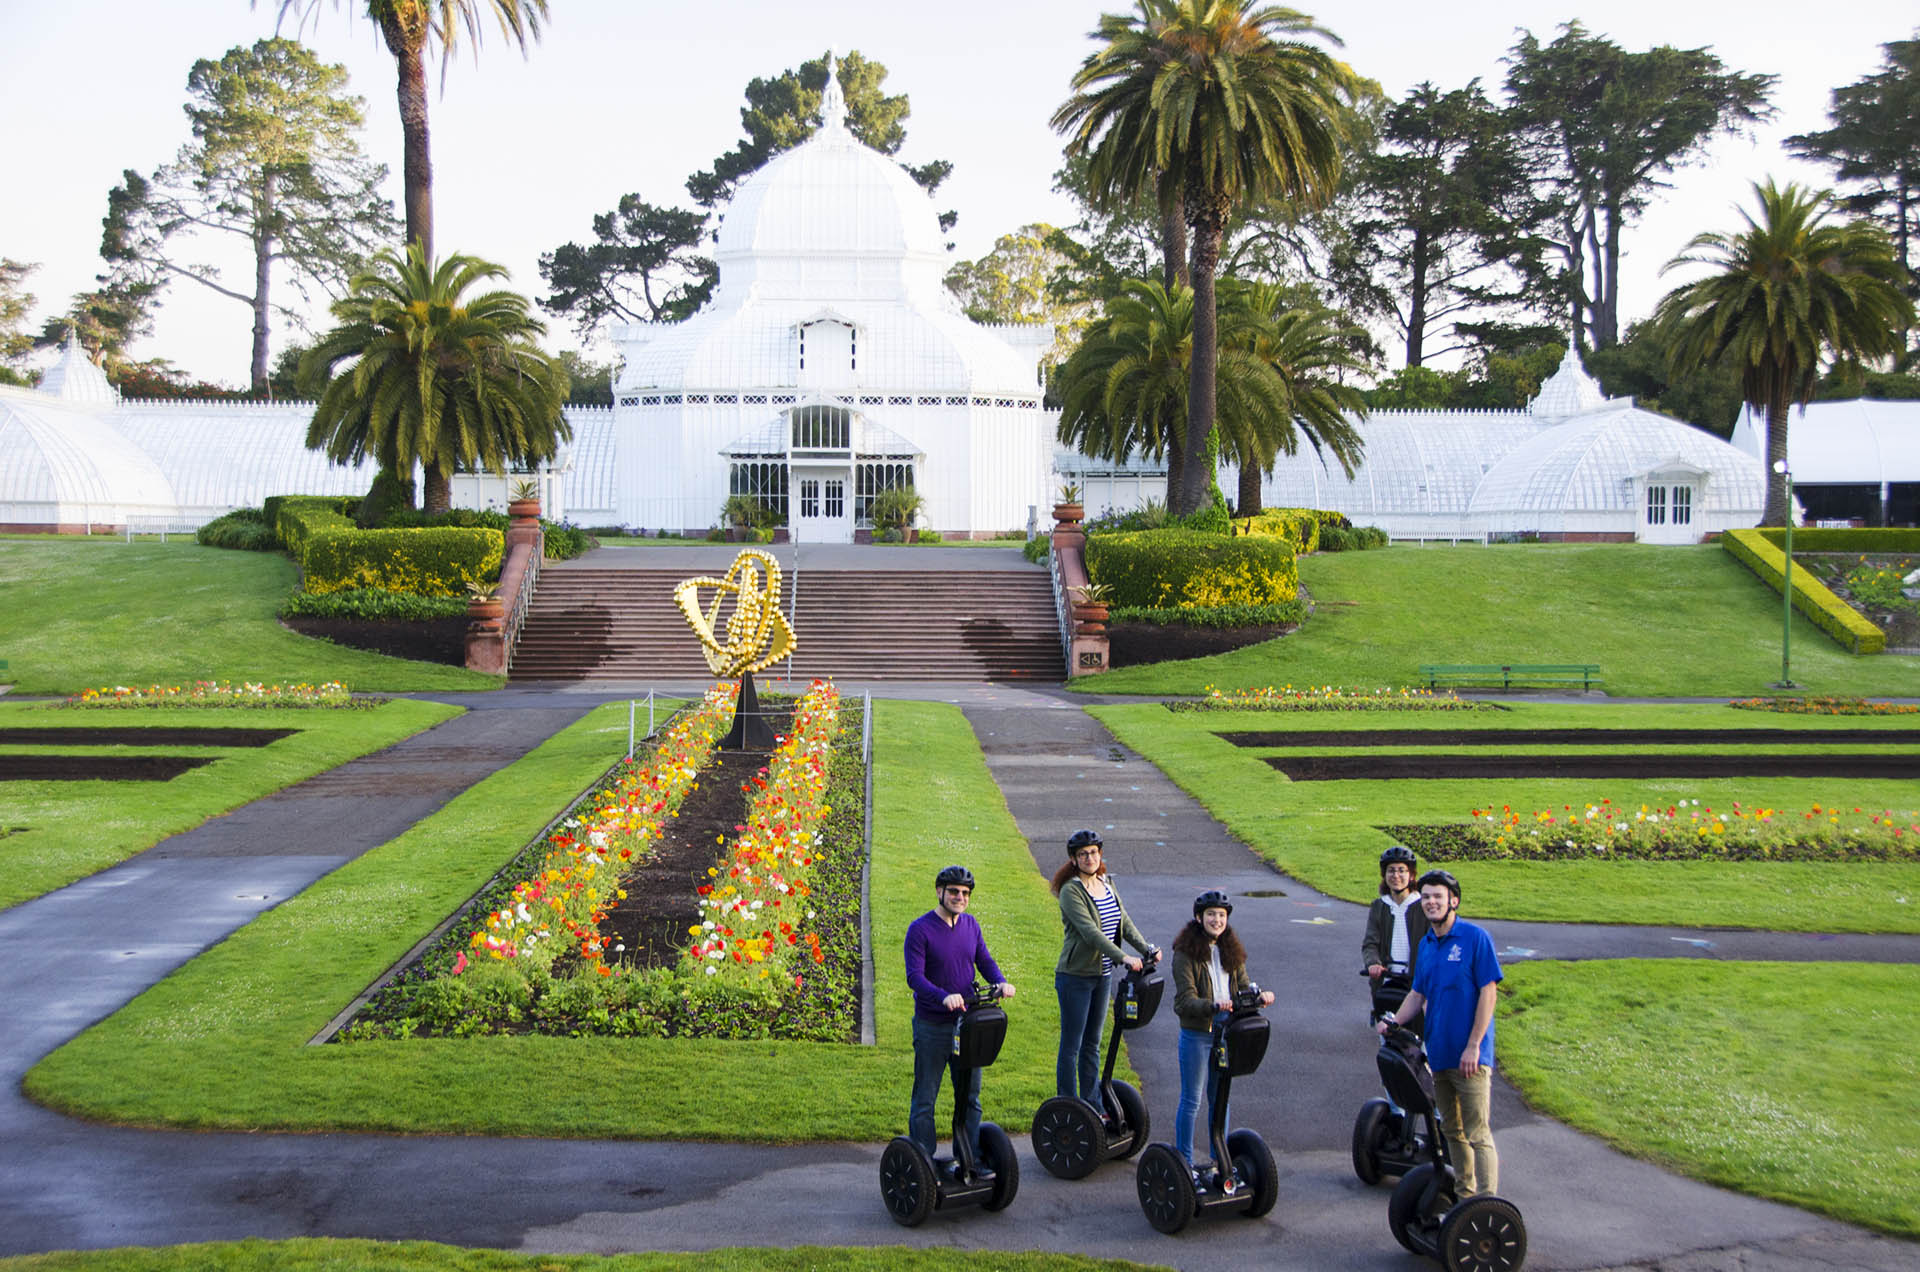 Golden Gate Park tour conservatory flowers segway